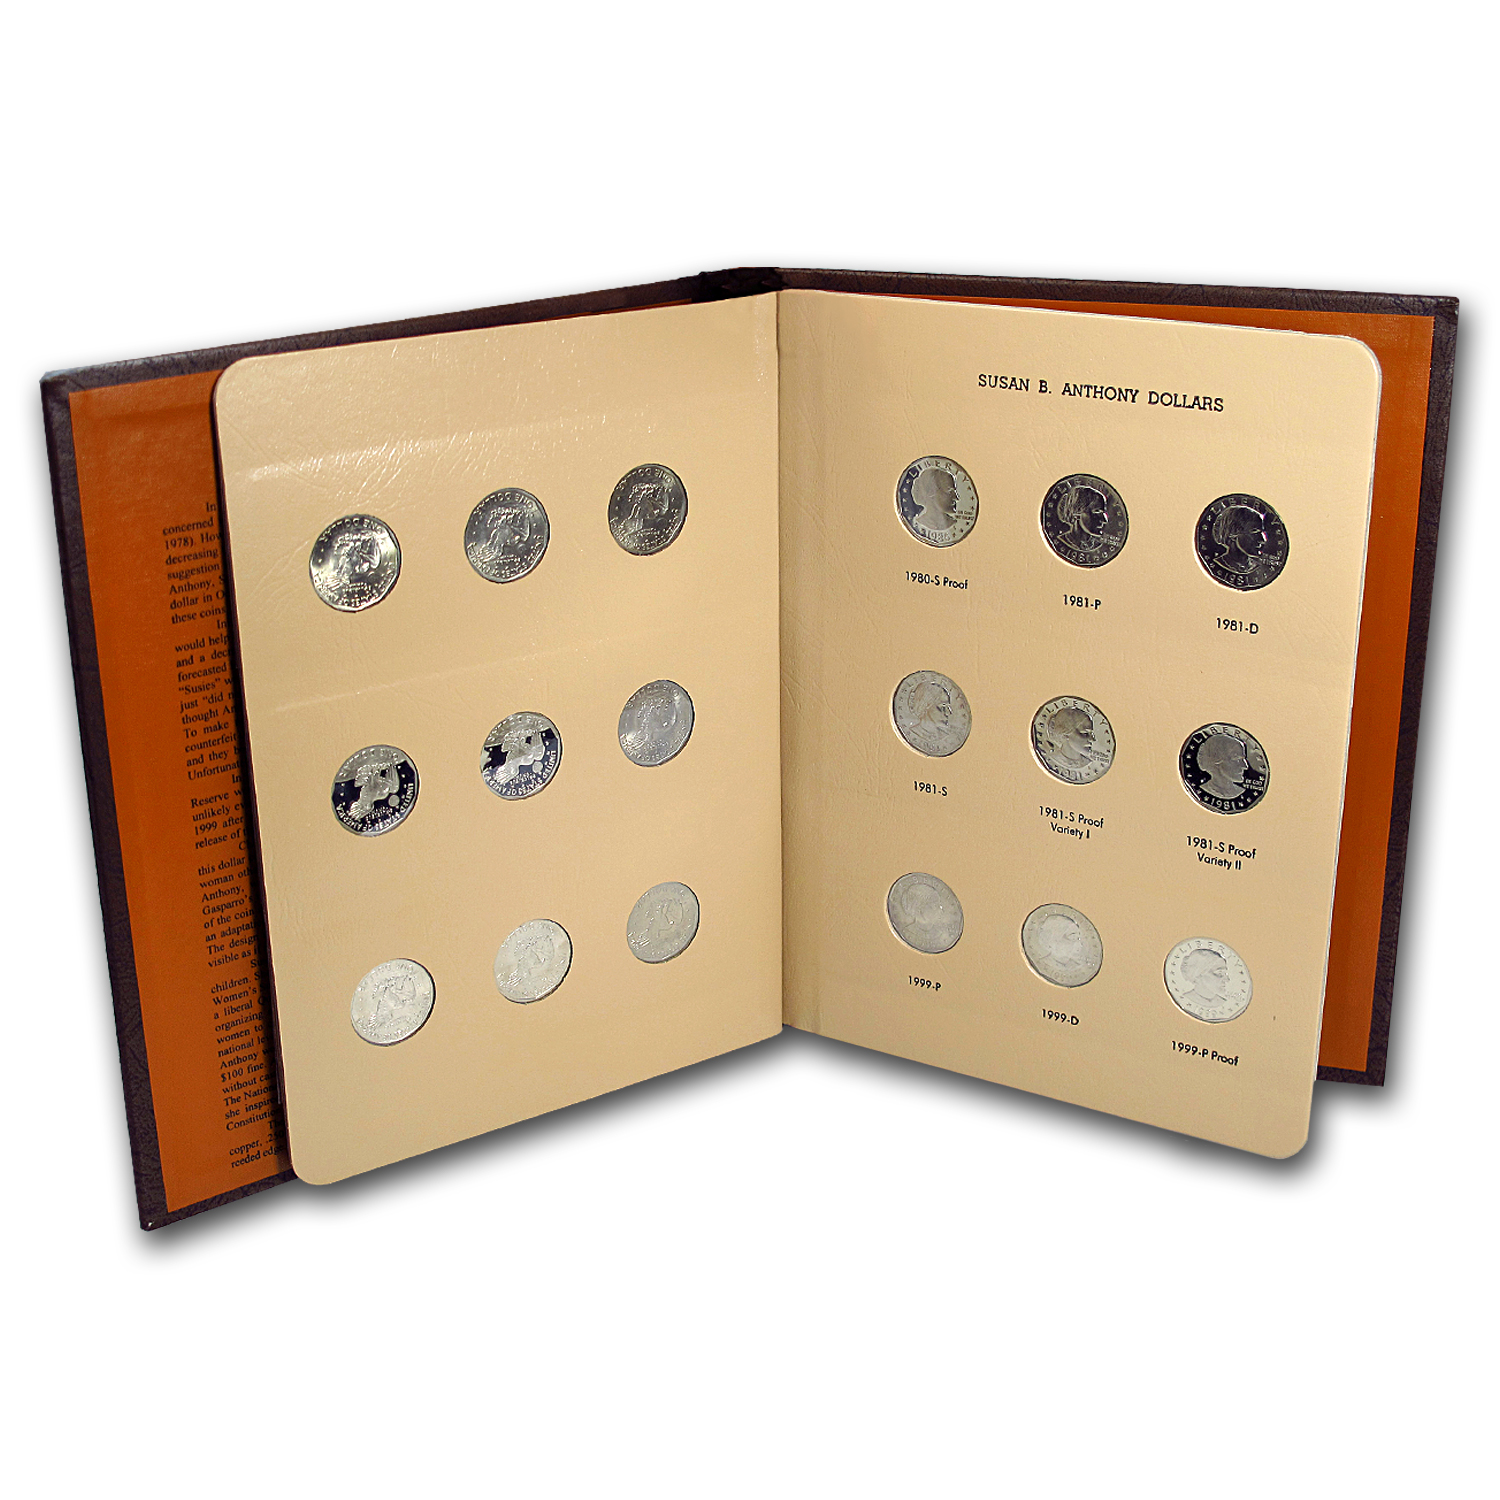 Susan B. Anthony Dollar 18-Coin Set (Dansco Album)